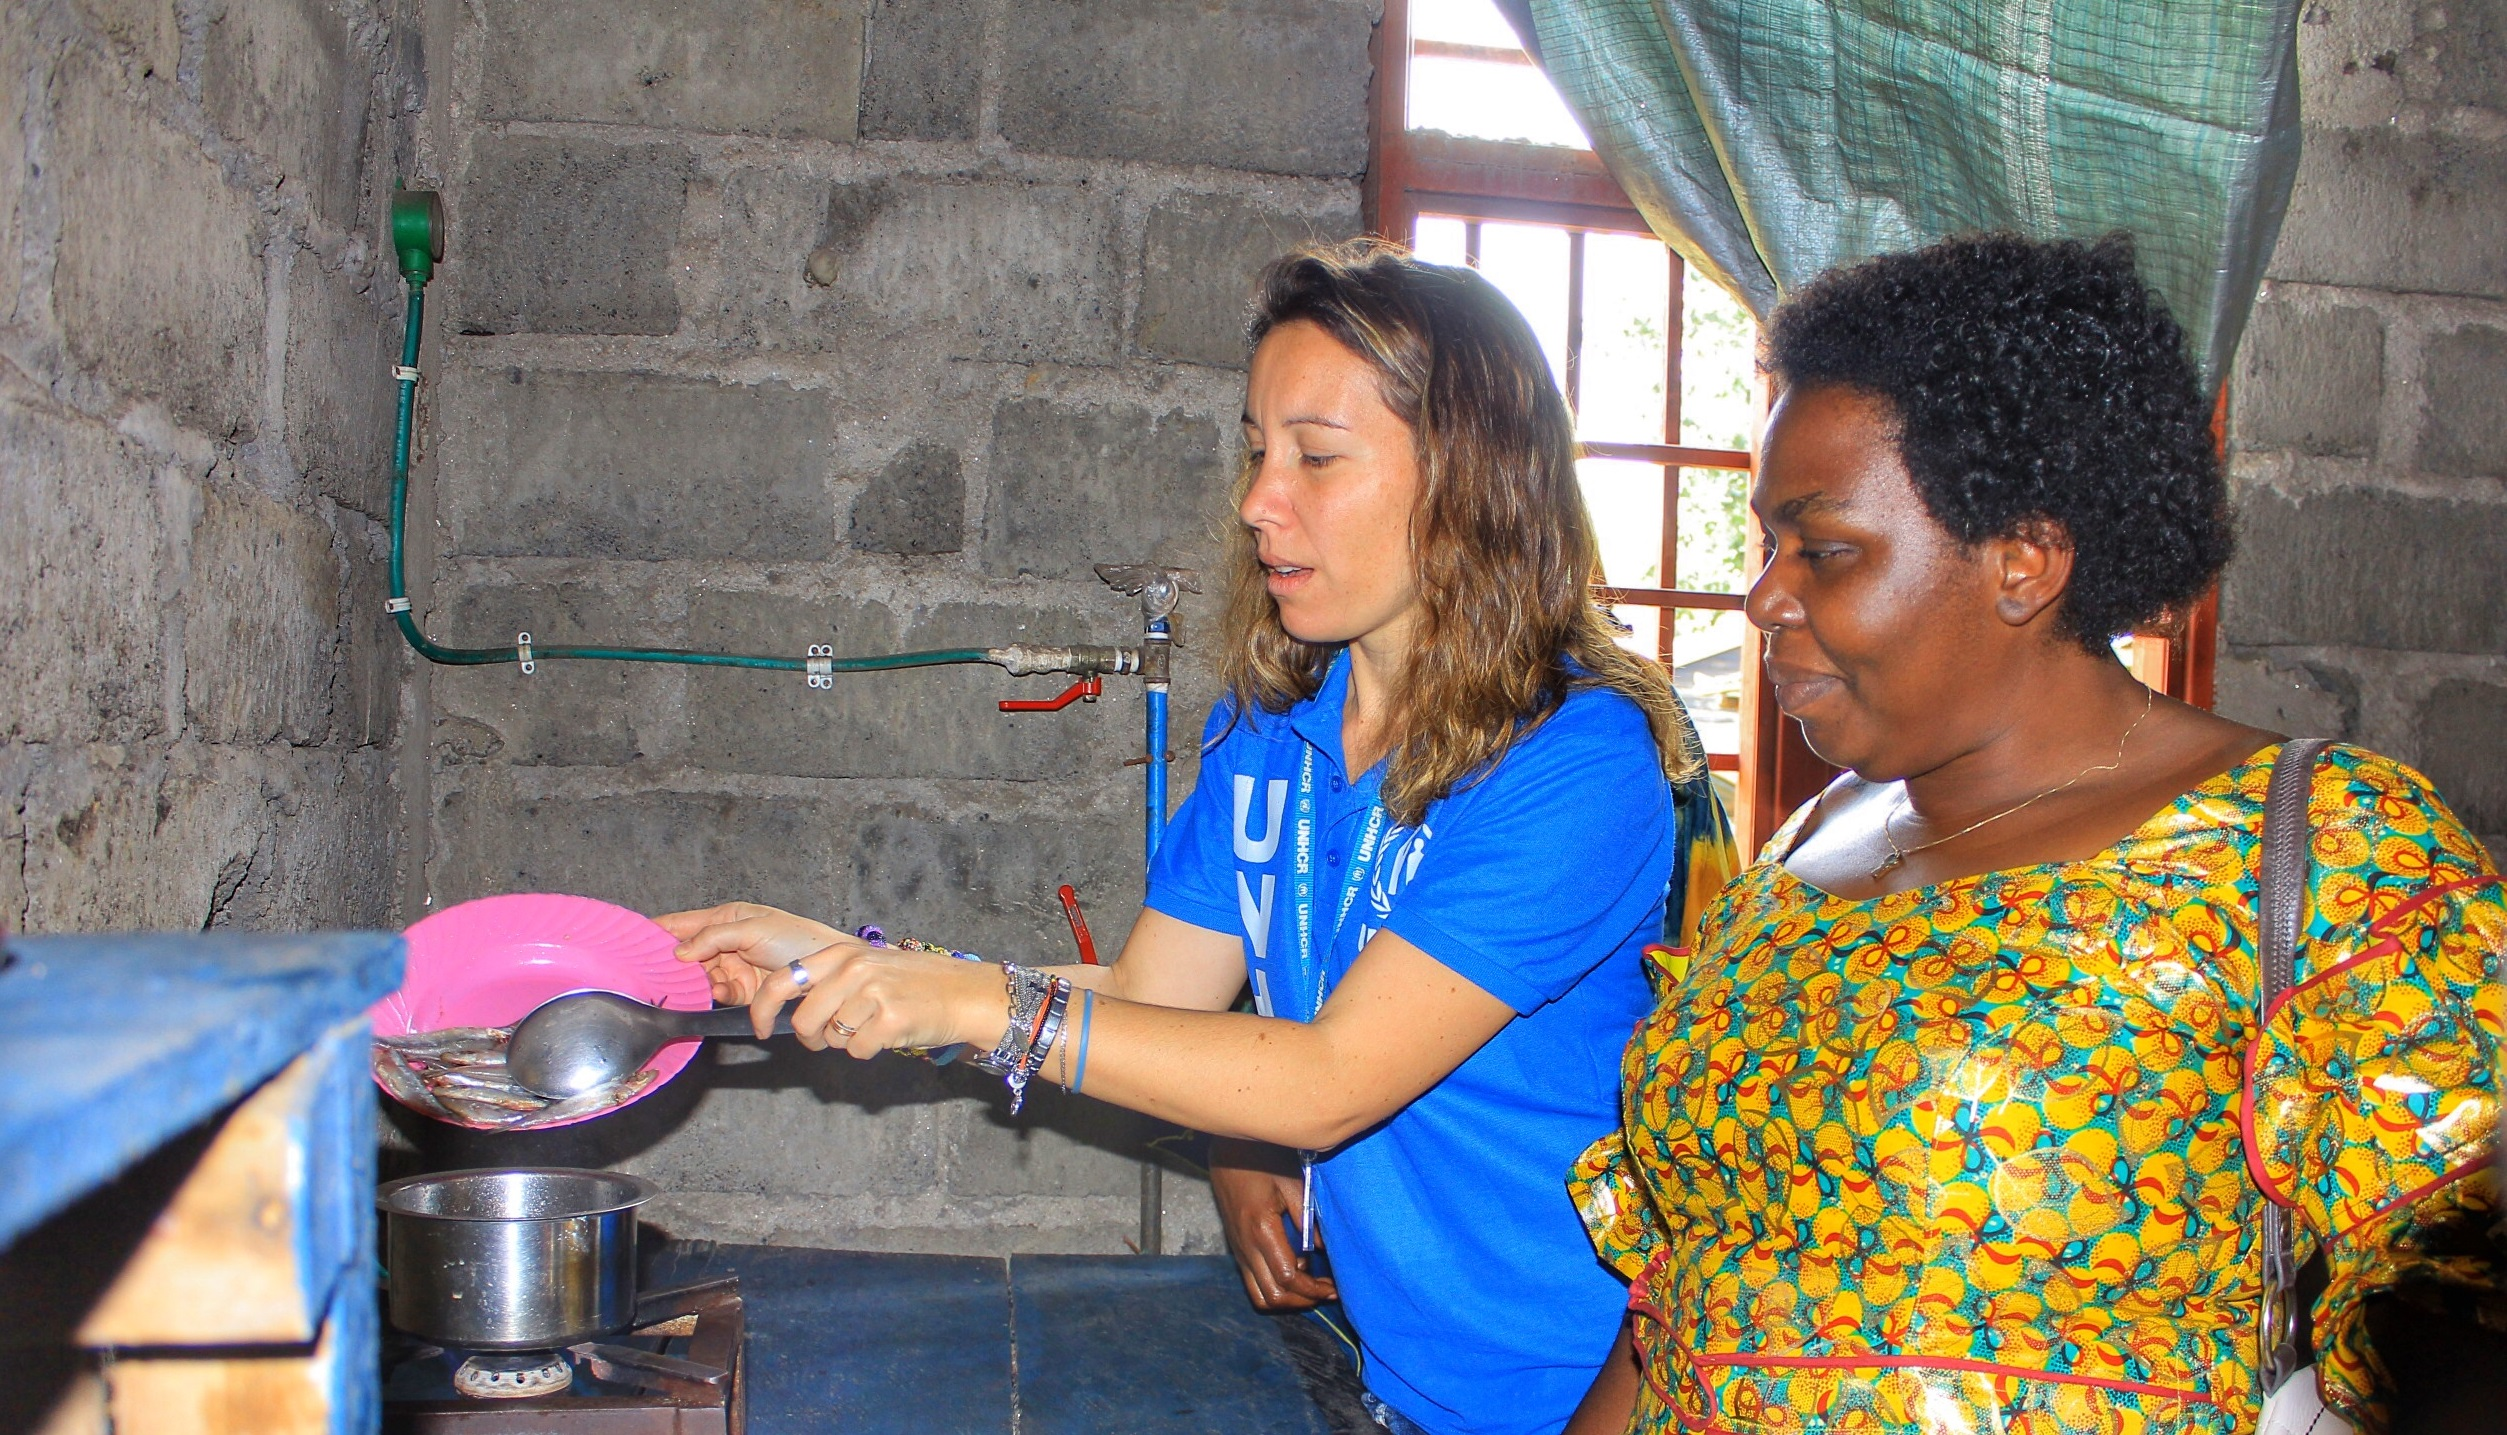 UN Volunteer Serena testing a biogaz installation in the framework of the 'safe access to fuel and energy' approach to reduce environmental impact of cooking needs through the production and use of durable clean energy. Credits UNH